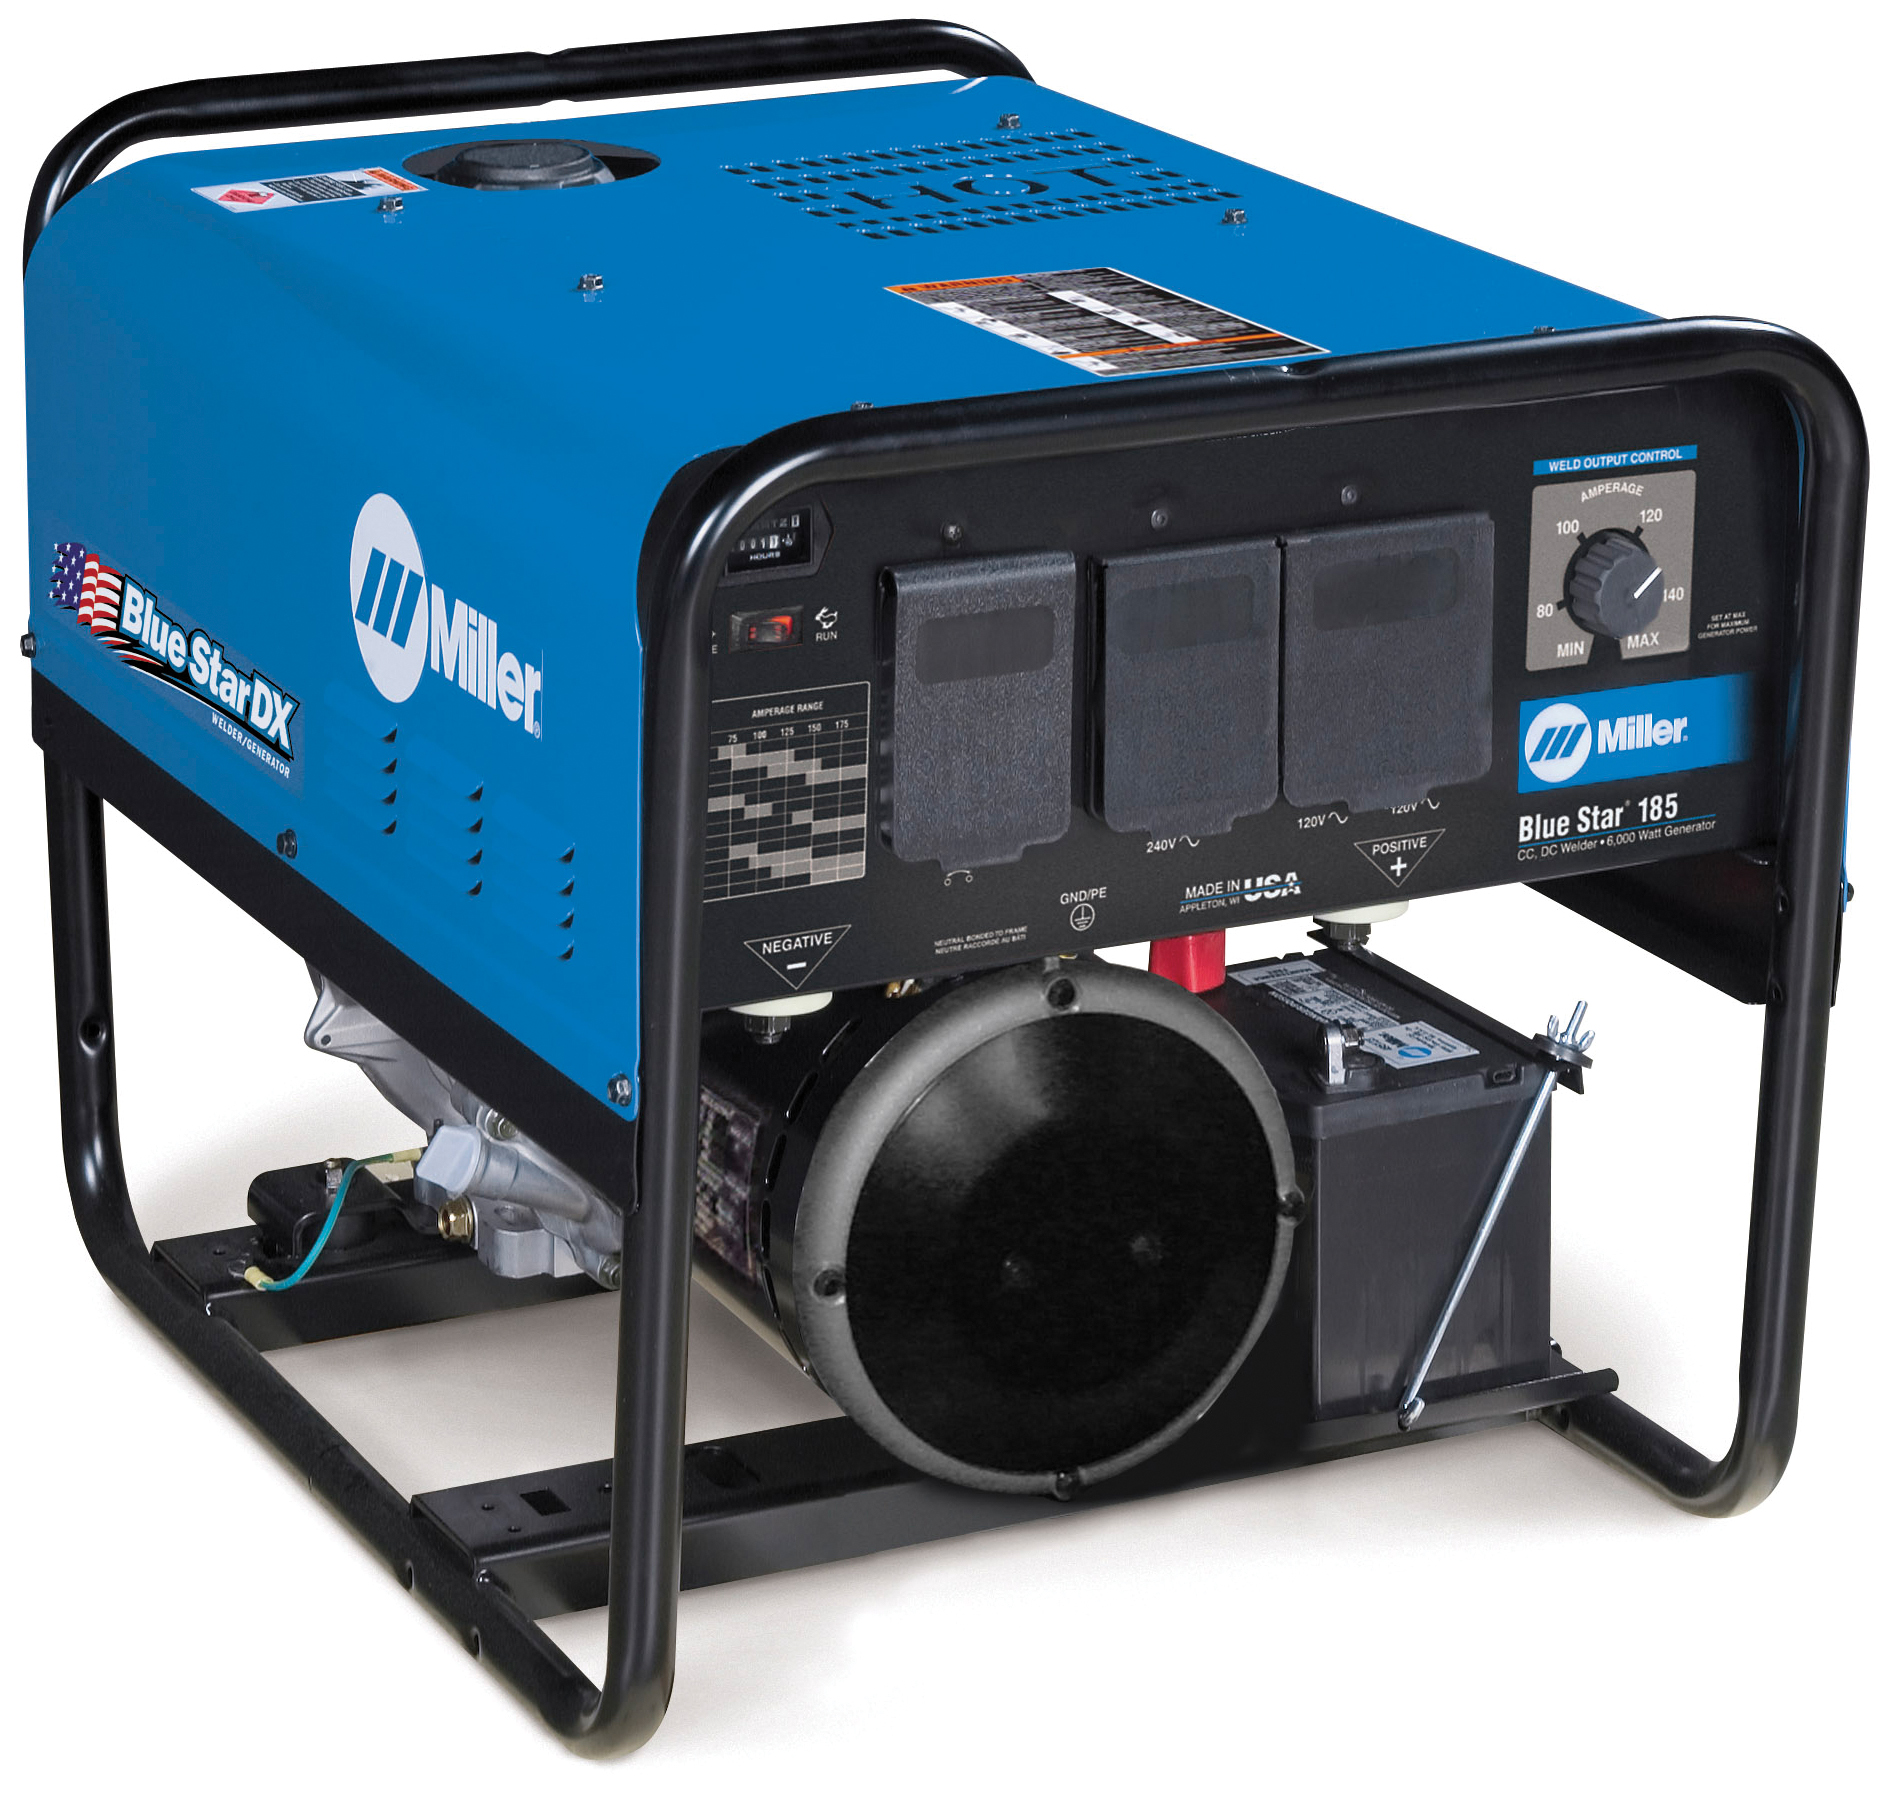 Miller Welding >> Ts Distributors Miller Blue Star 185 Series Generator